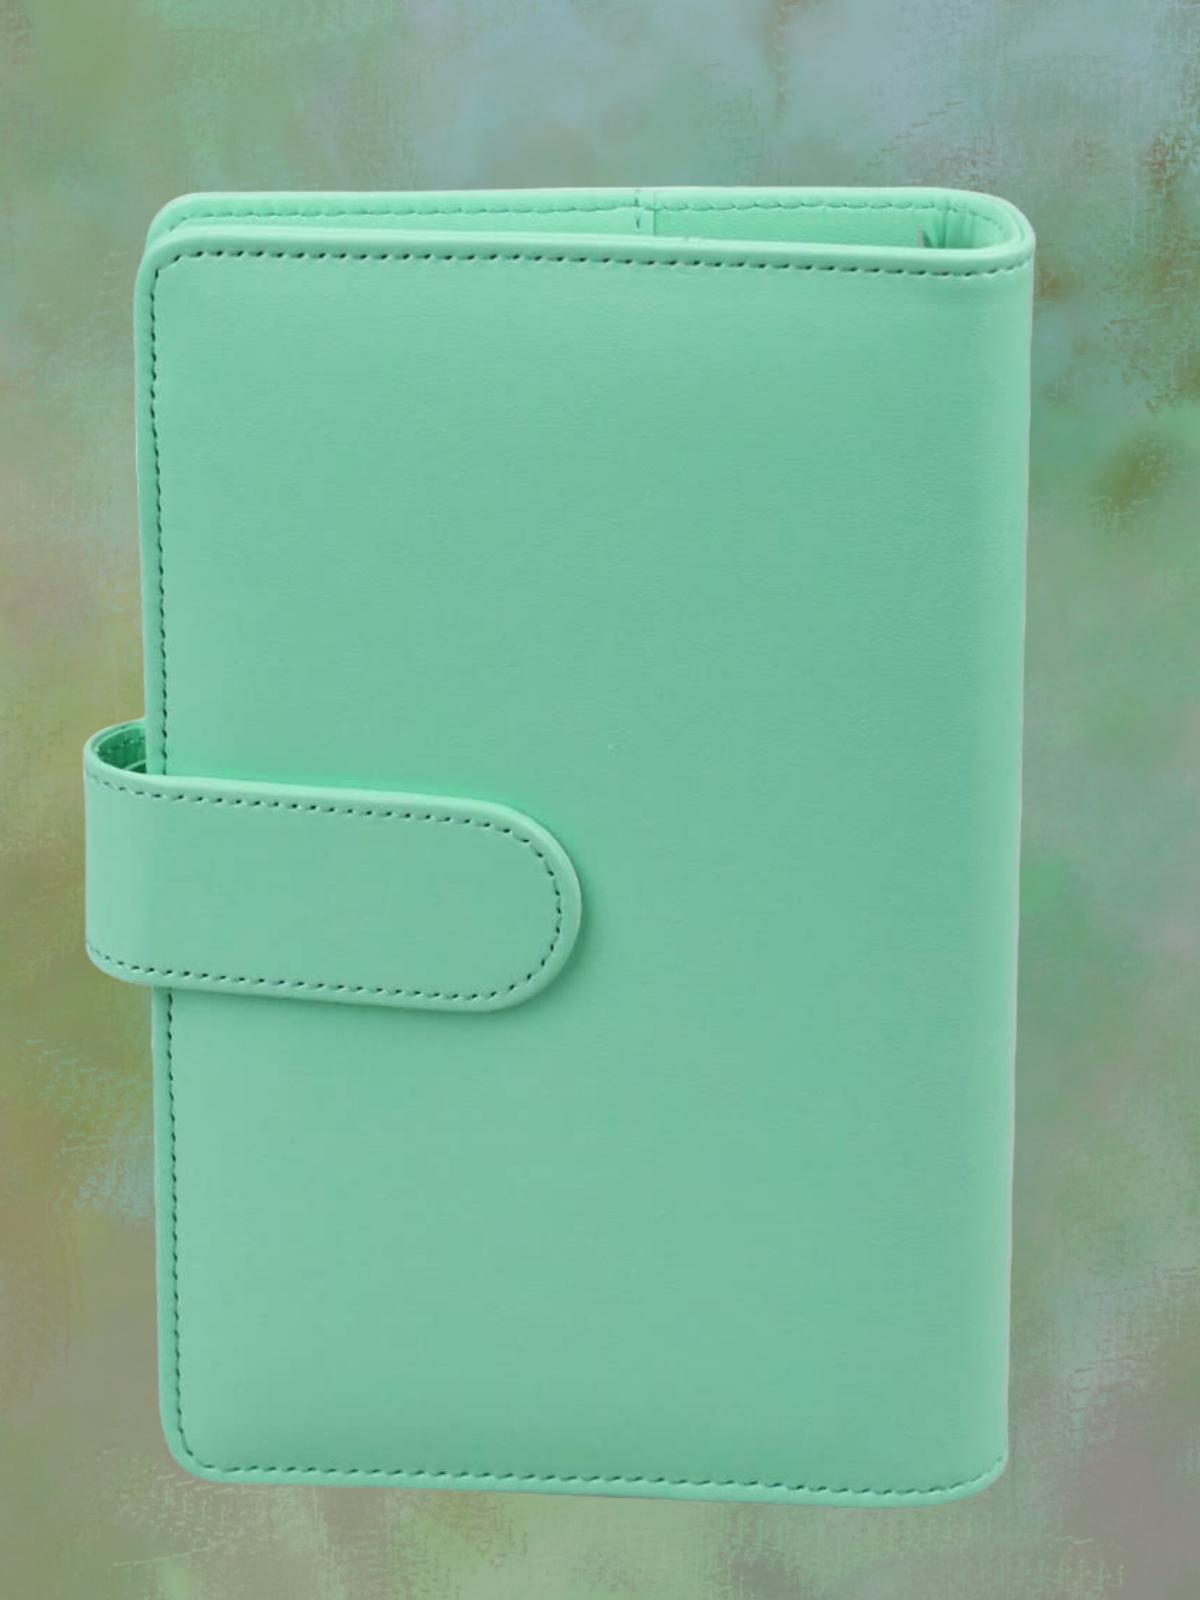 Leather envelope money manager, system, coupon organizer